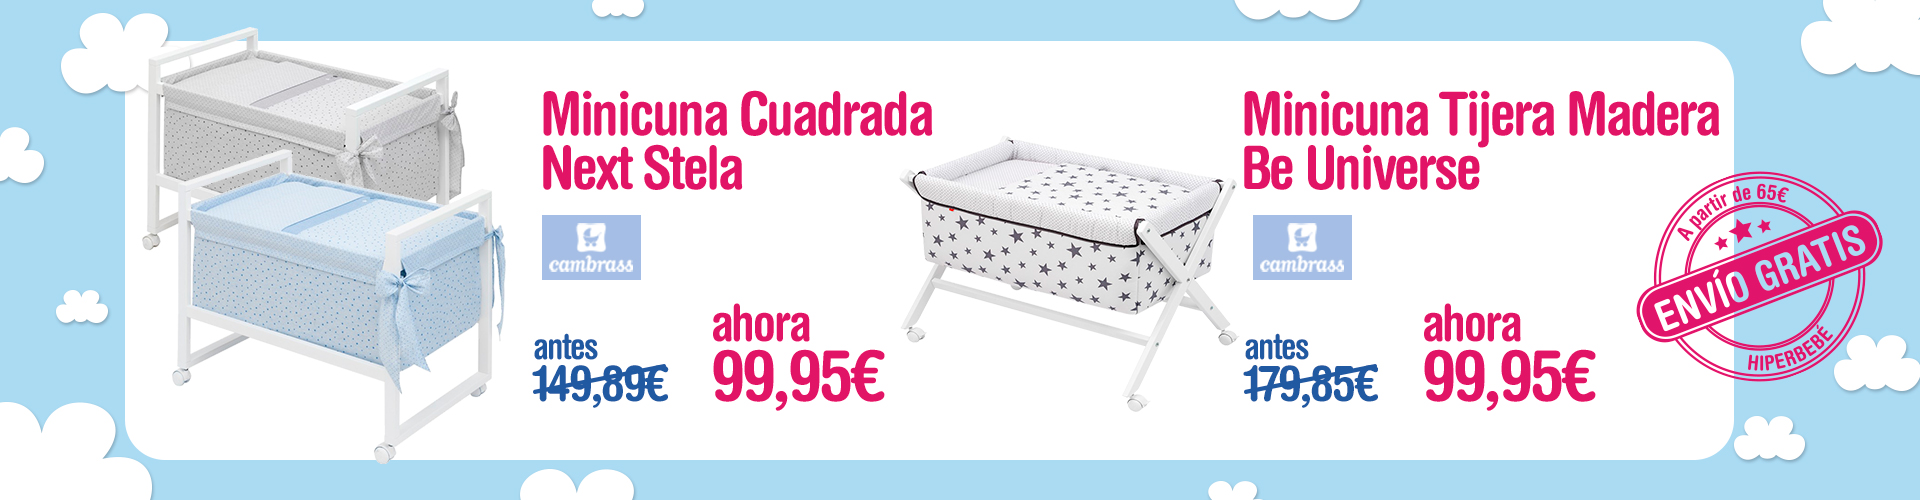 AAFF_01981_CREA_BANNER_1920X500PX_3_PRODUCTOS_HIPERBEBE_2019